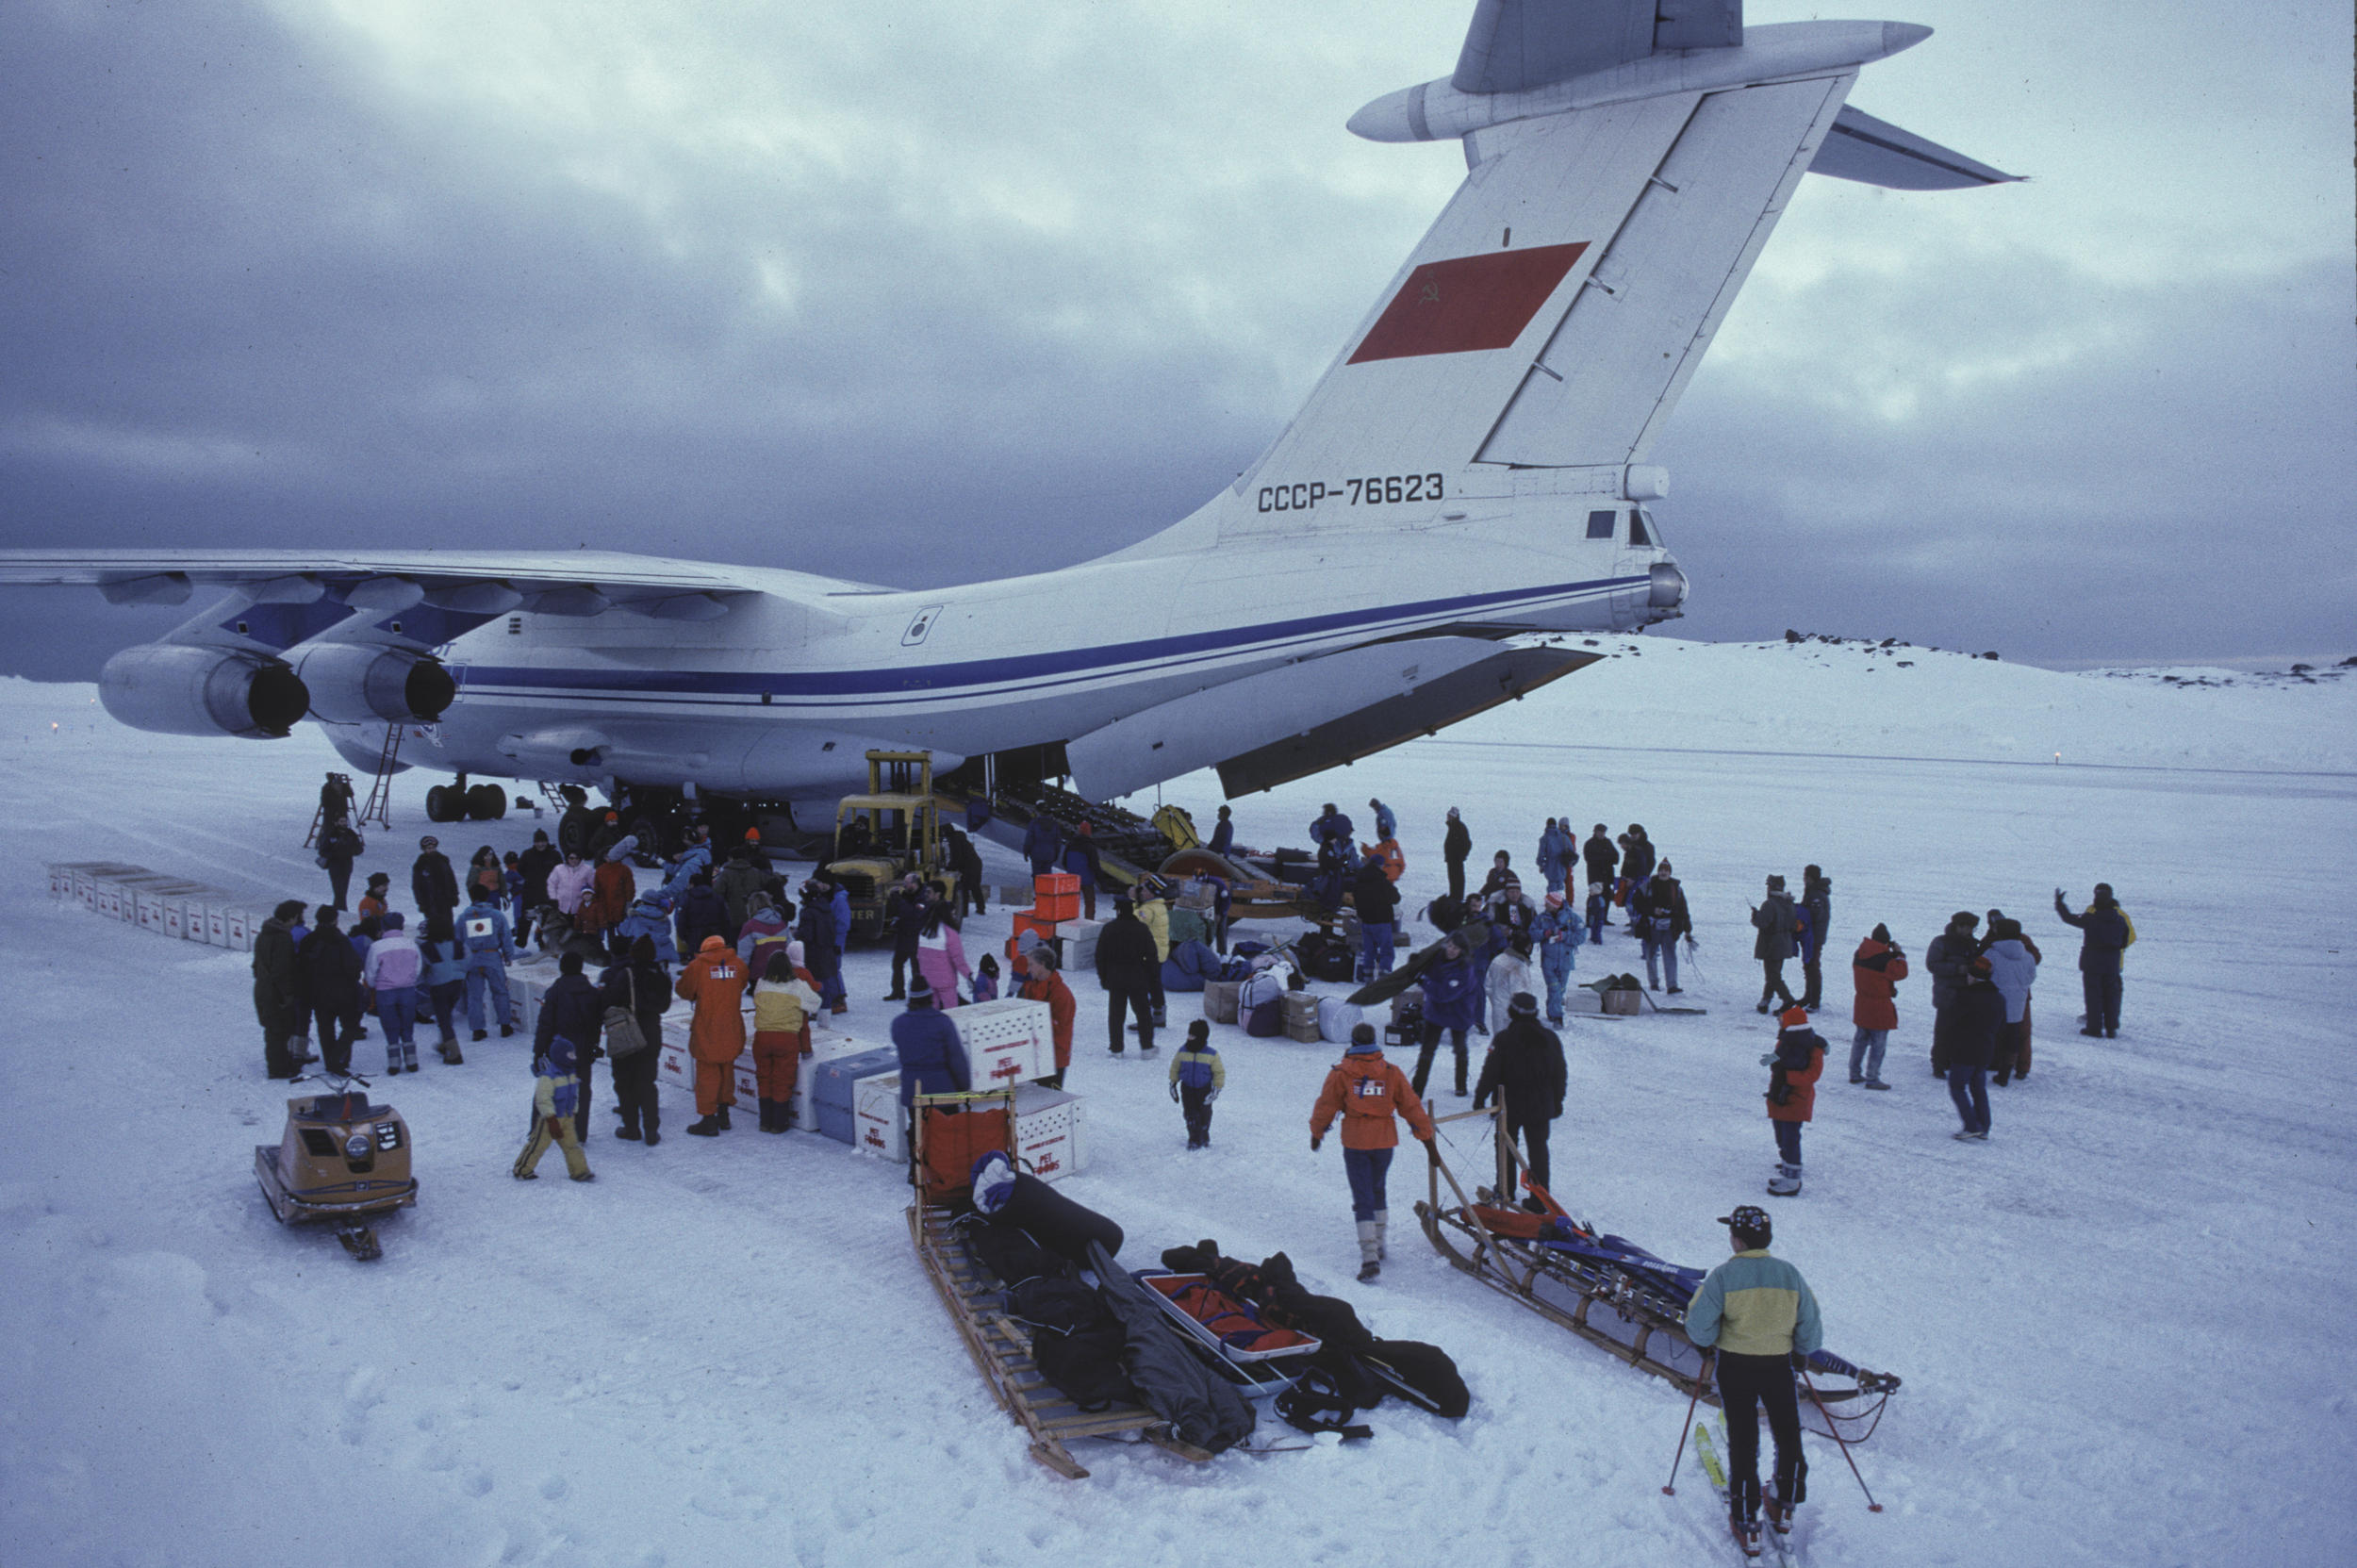 King George Island residents gather to watch the expedition unload the Illyushin 76. July 1989. ©Trans-Antarctica, photo by Per Breiehagen